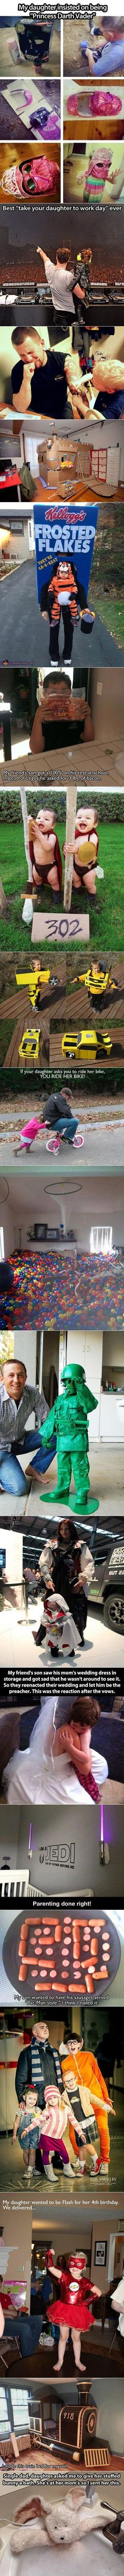 Here are some awesome and geeky parents who are doing it right. - Imgur